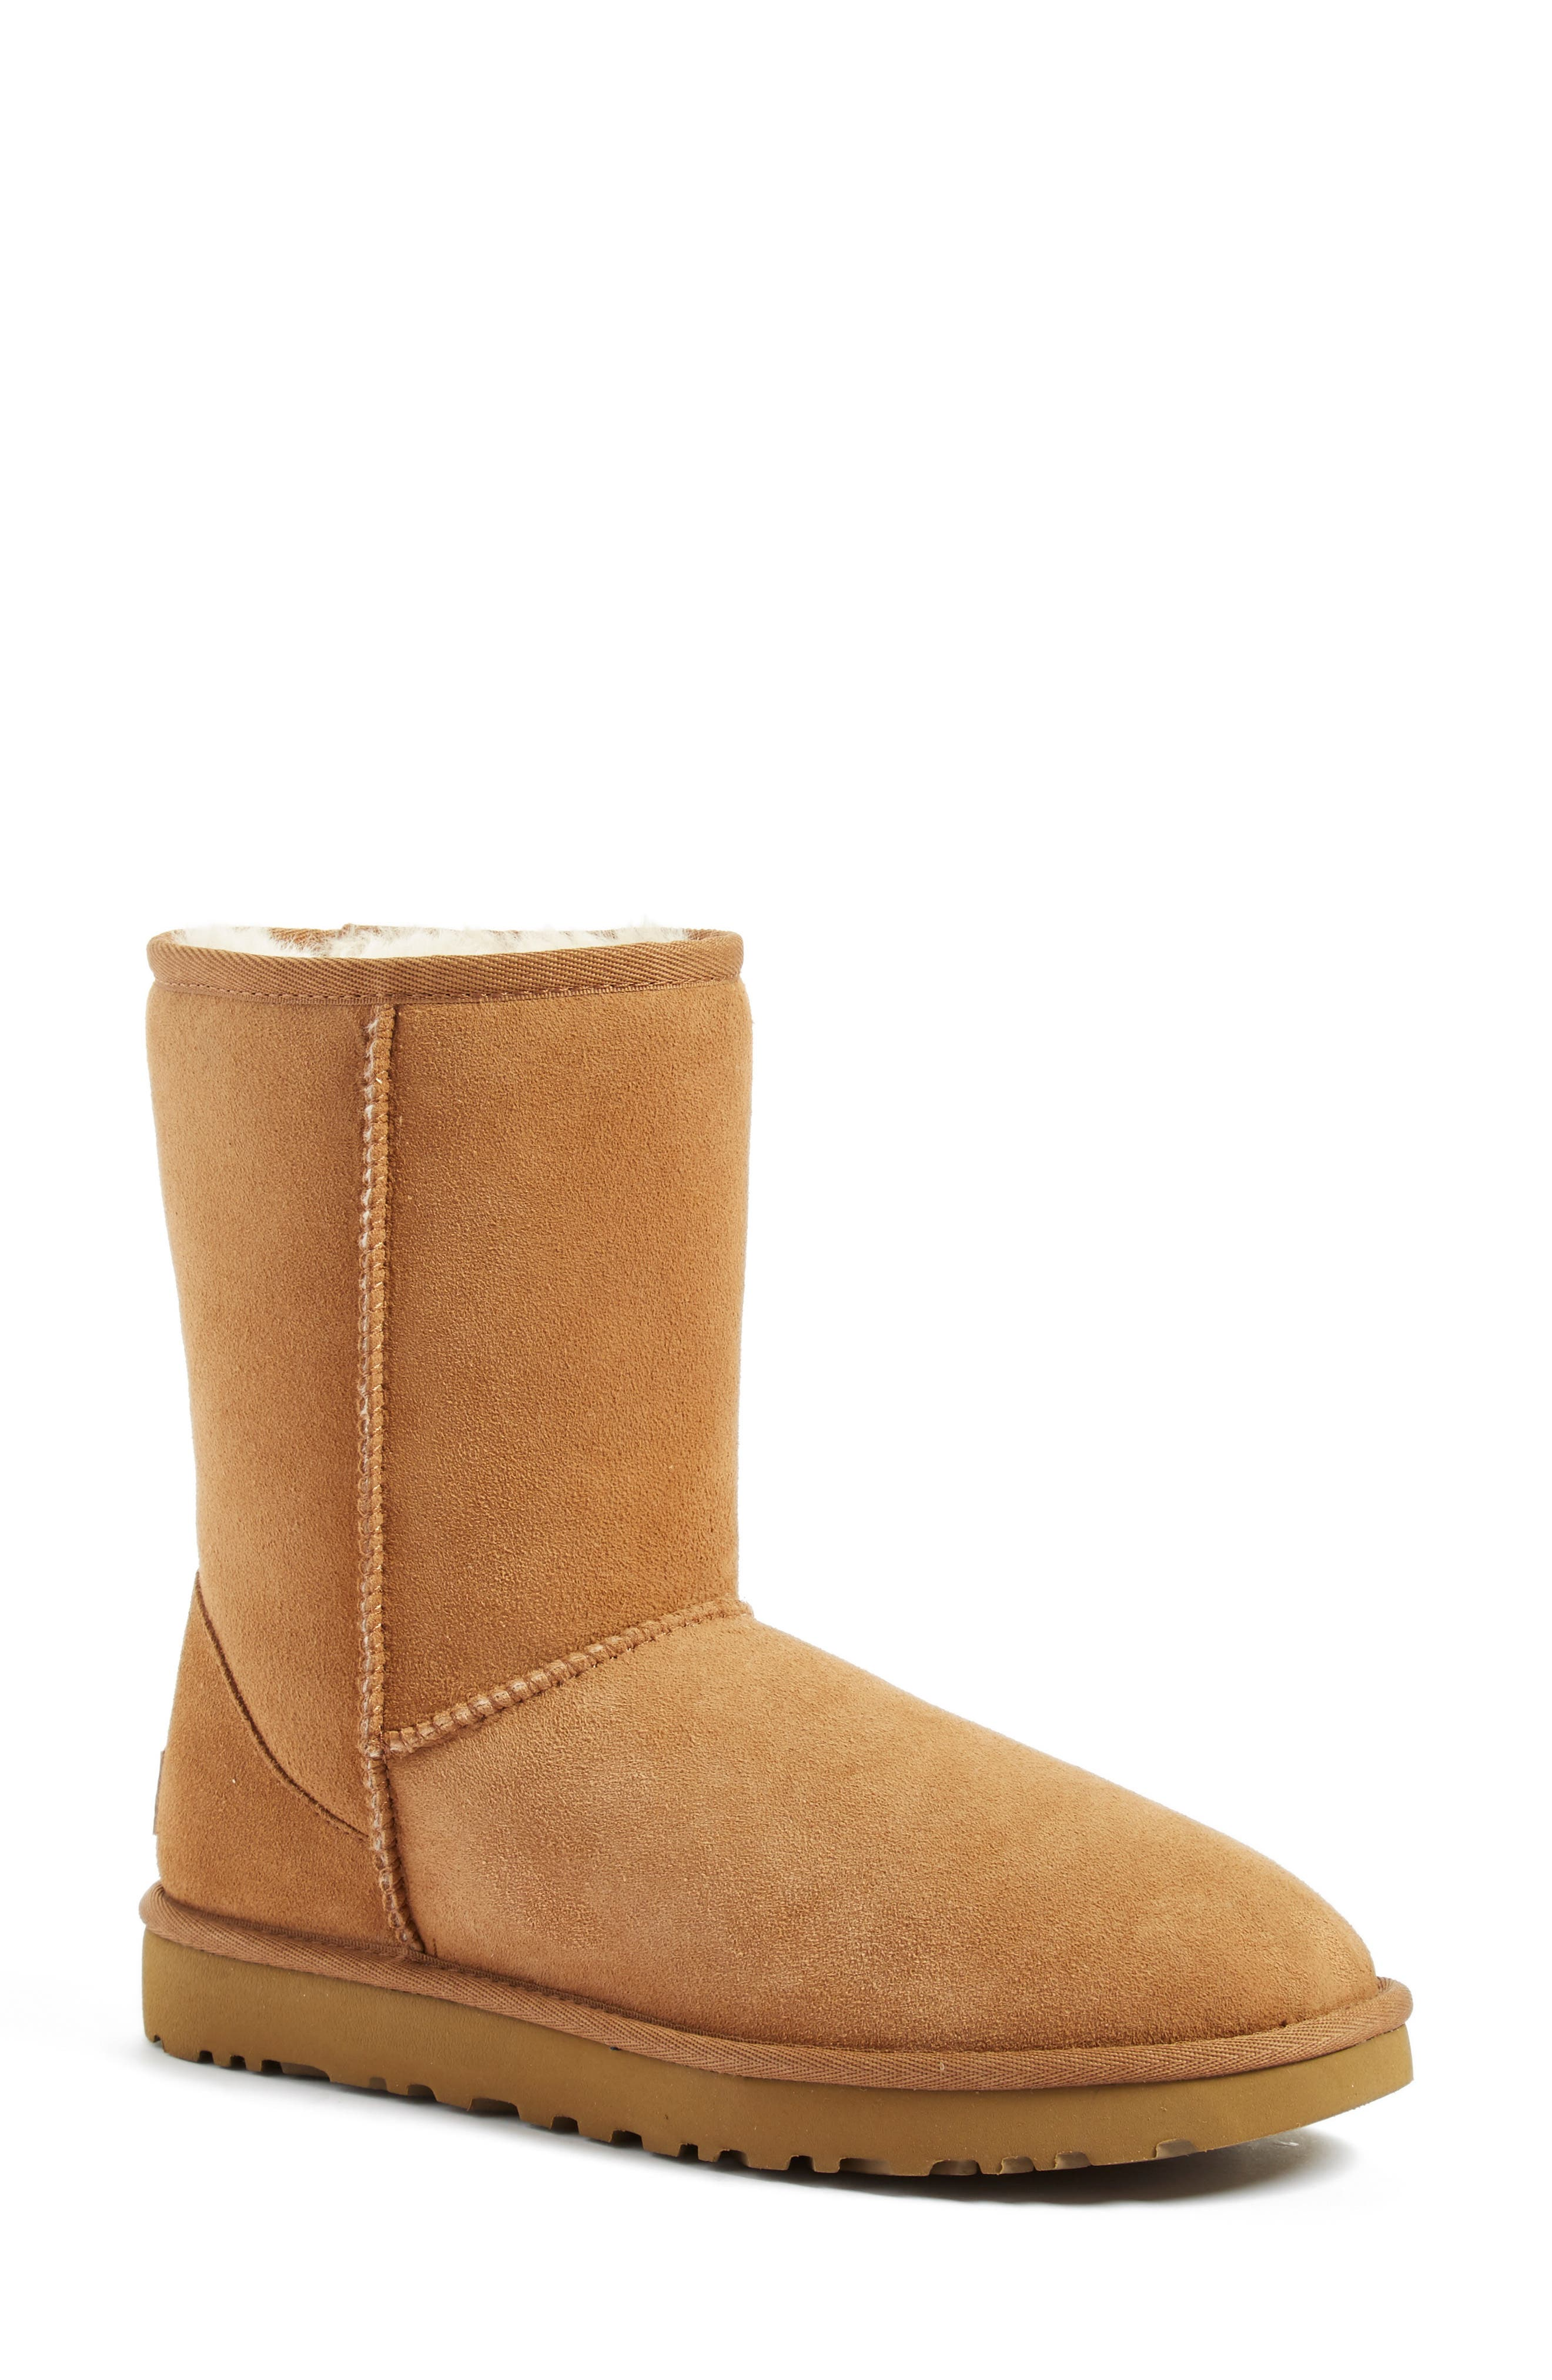 UGG<SUP>®</SUP>, Classic II Genuine Shearling Lined Short Boot, Main thumbnail 1, color, CHESTNUT SUEDE